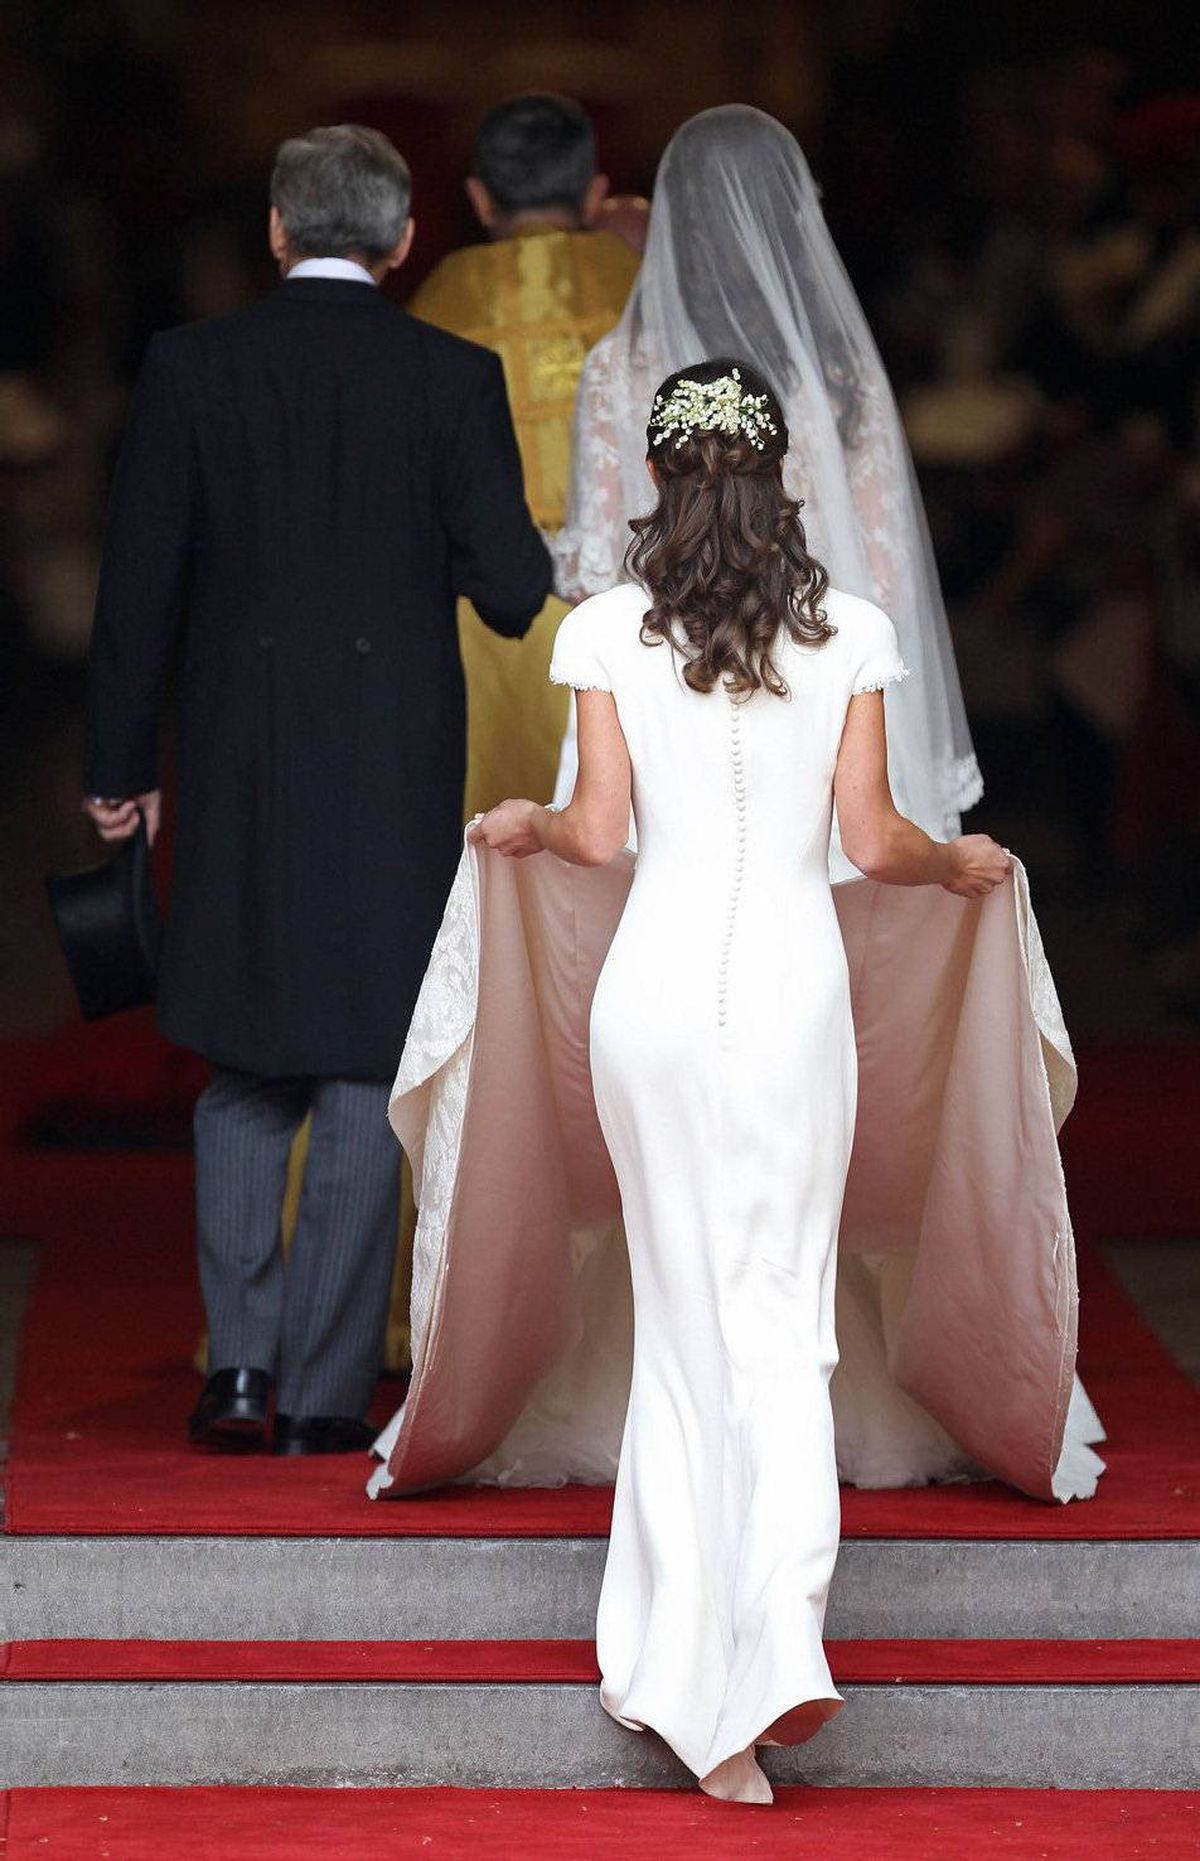 No gambler saw this Royal Wedding scandal coming. Kate's sister, Pippa, made headlines for her curve-hugging maid-of-honour dress. While you're not supposed to outshine the bride, Pippa certainly set more tongues wagging and started a plastic surgery trend: The Pippa Middleton butt.